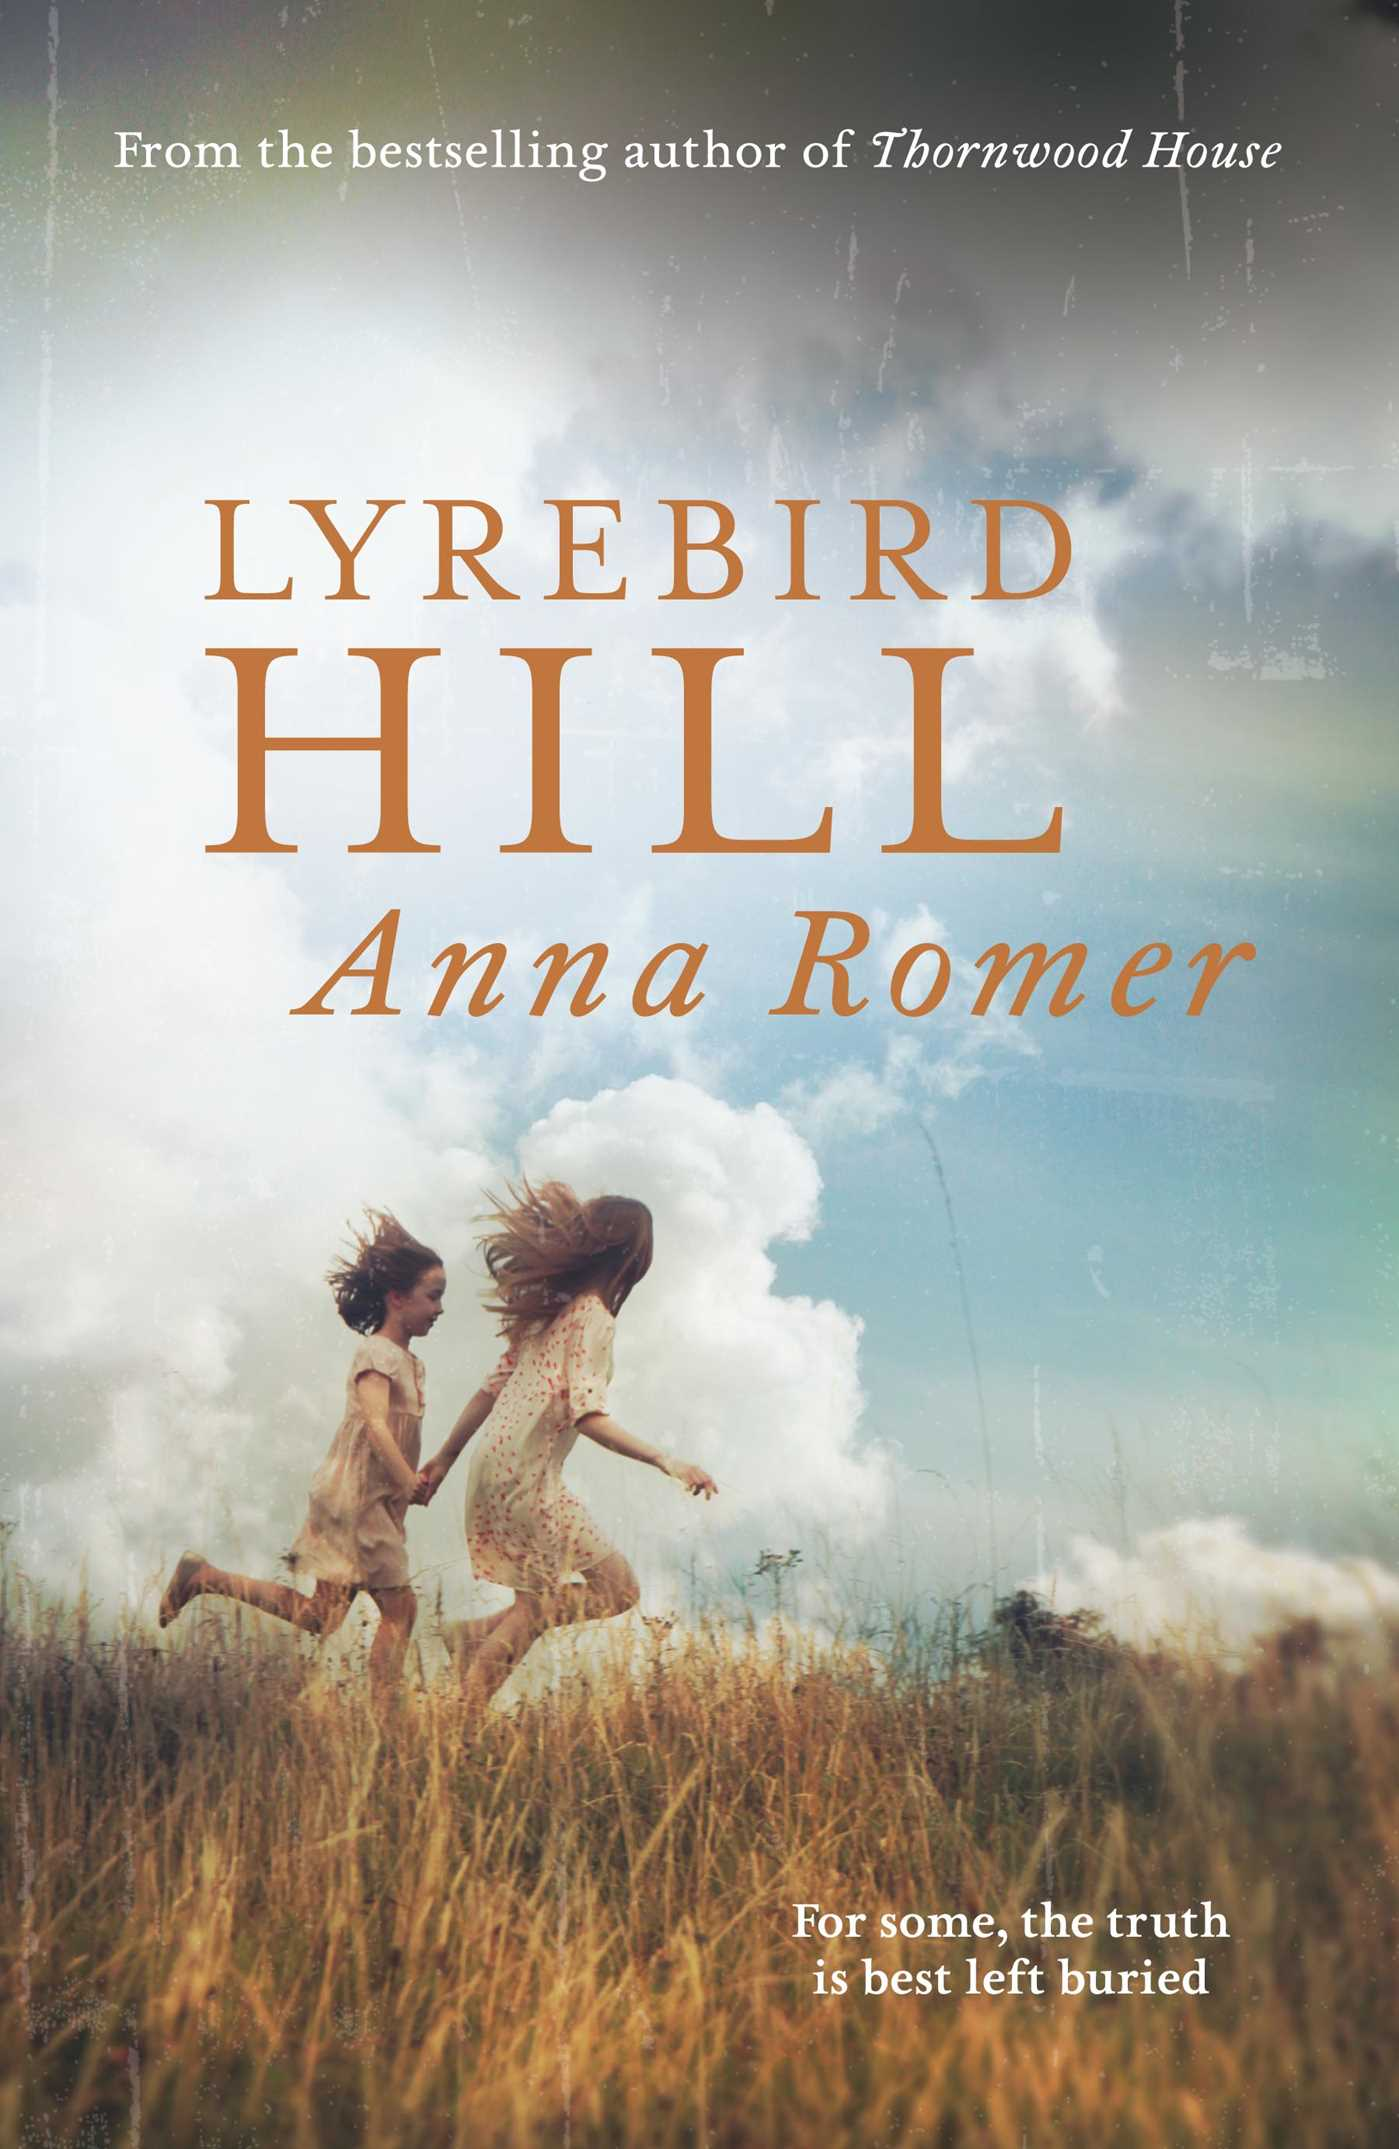 Lyrebird-hill-9781922052421_hr